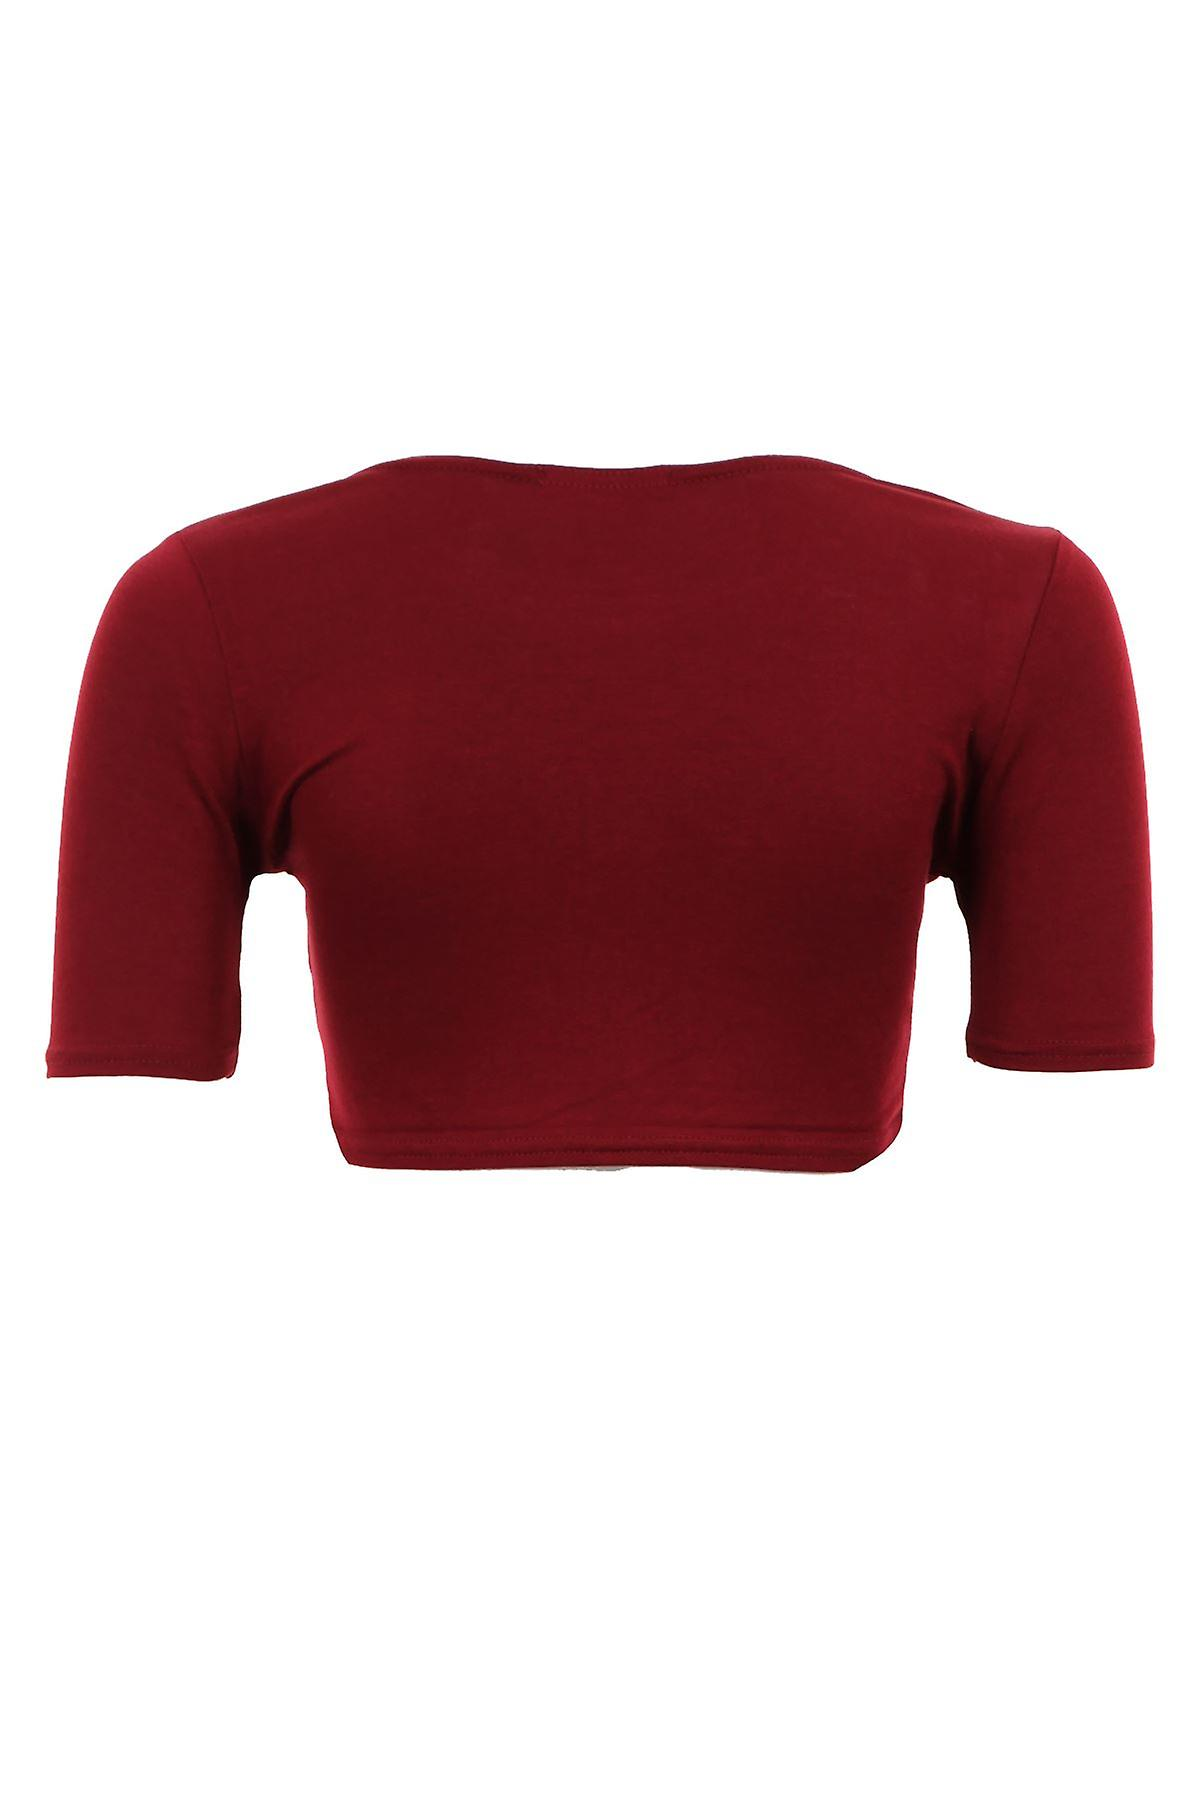 New Ladies Short Sleeve Plain Coloured Cropped Blouse Women's Top